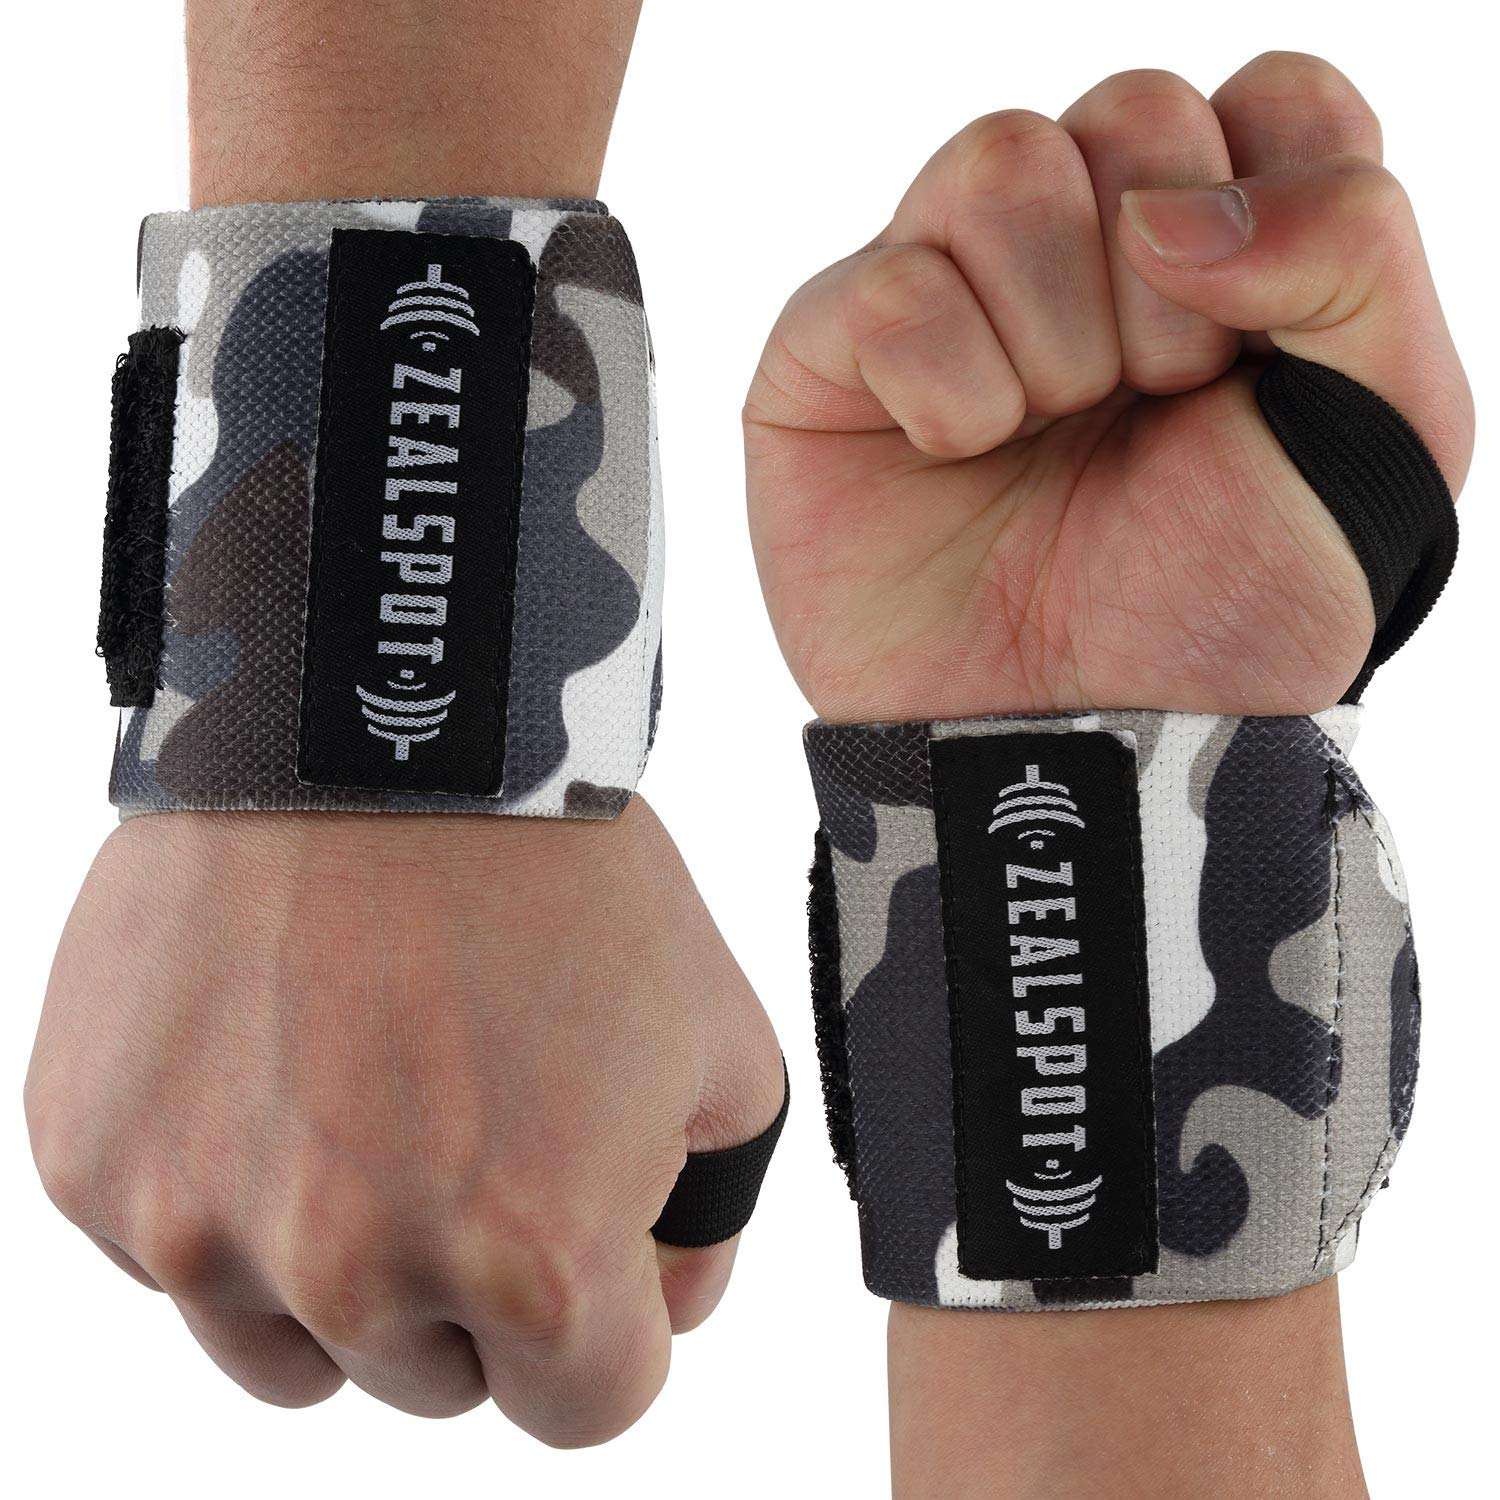 Deadlifts Bodybuilding Powerlifting Strength Training Xfit and MMA-for Women /& Men Camo Z ZEALSPOT Wrist Wraps /& Lifting Straps for Weightlifting